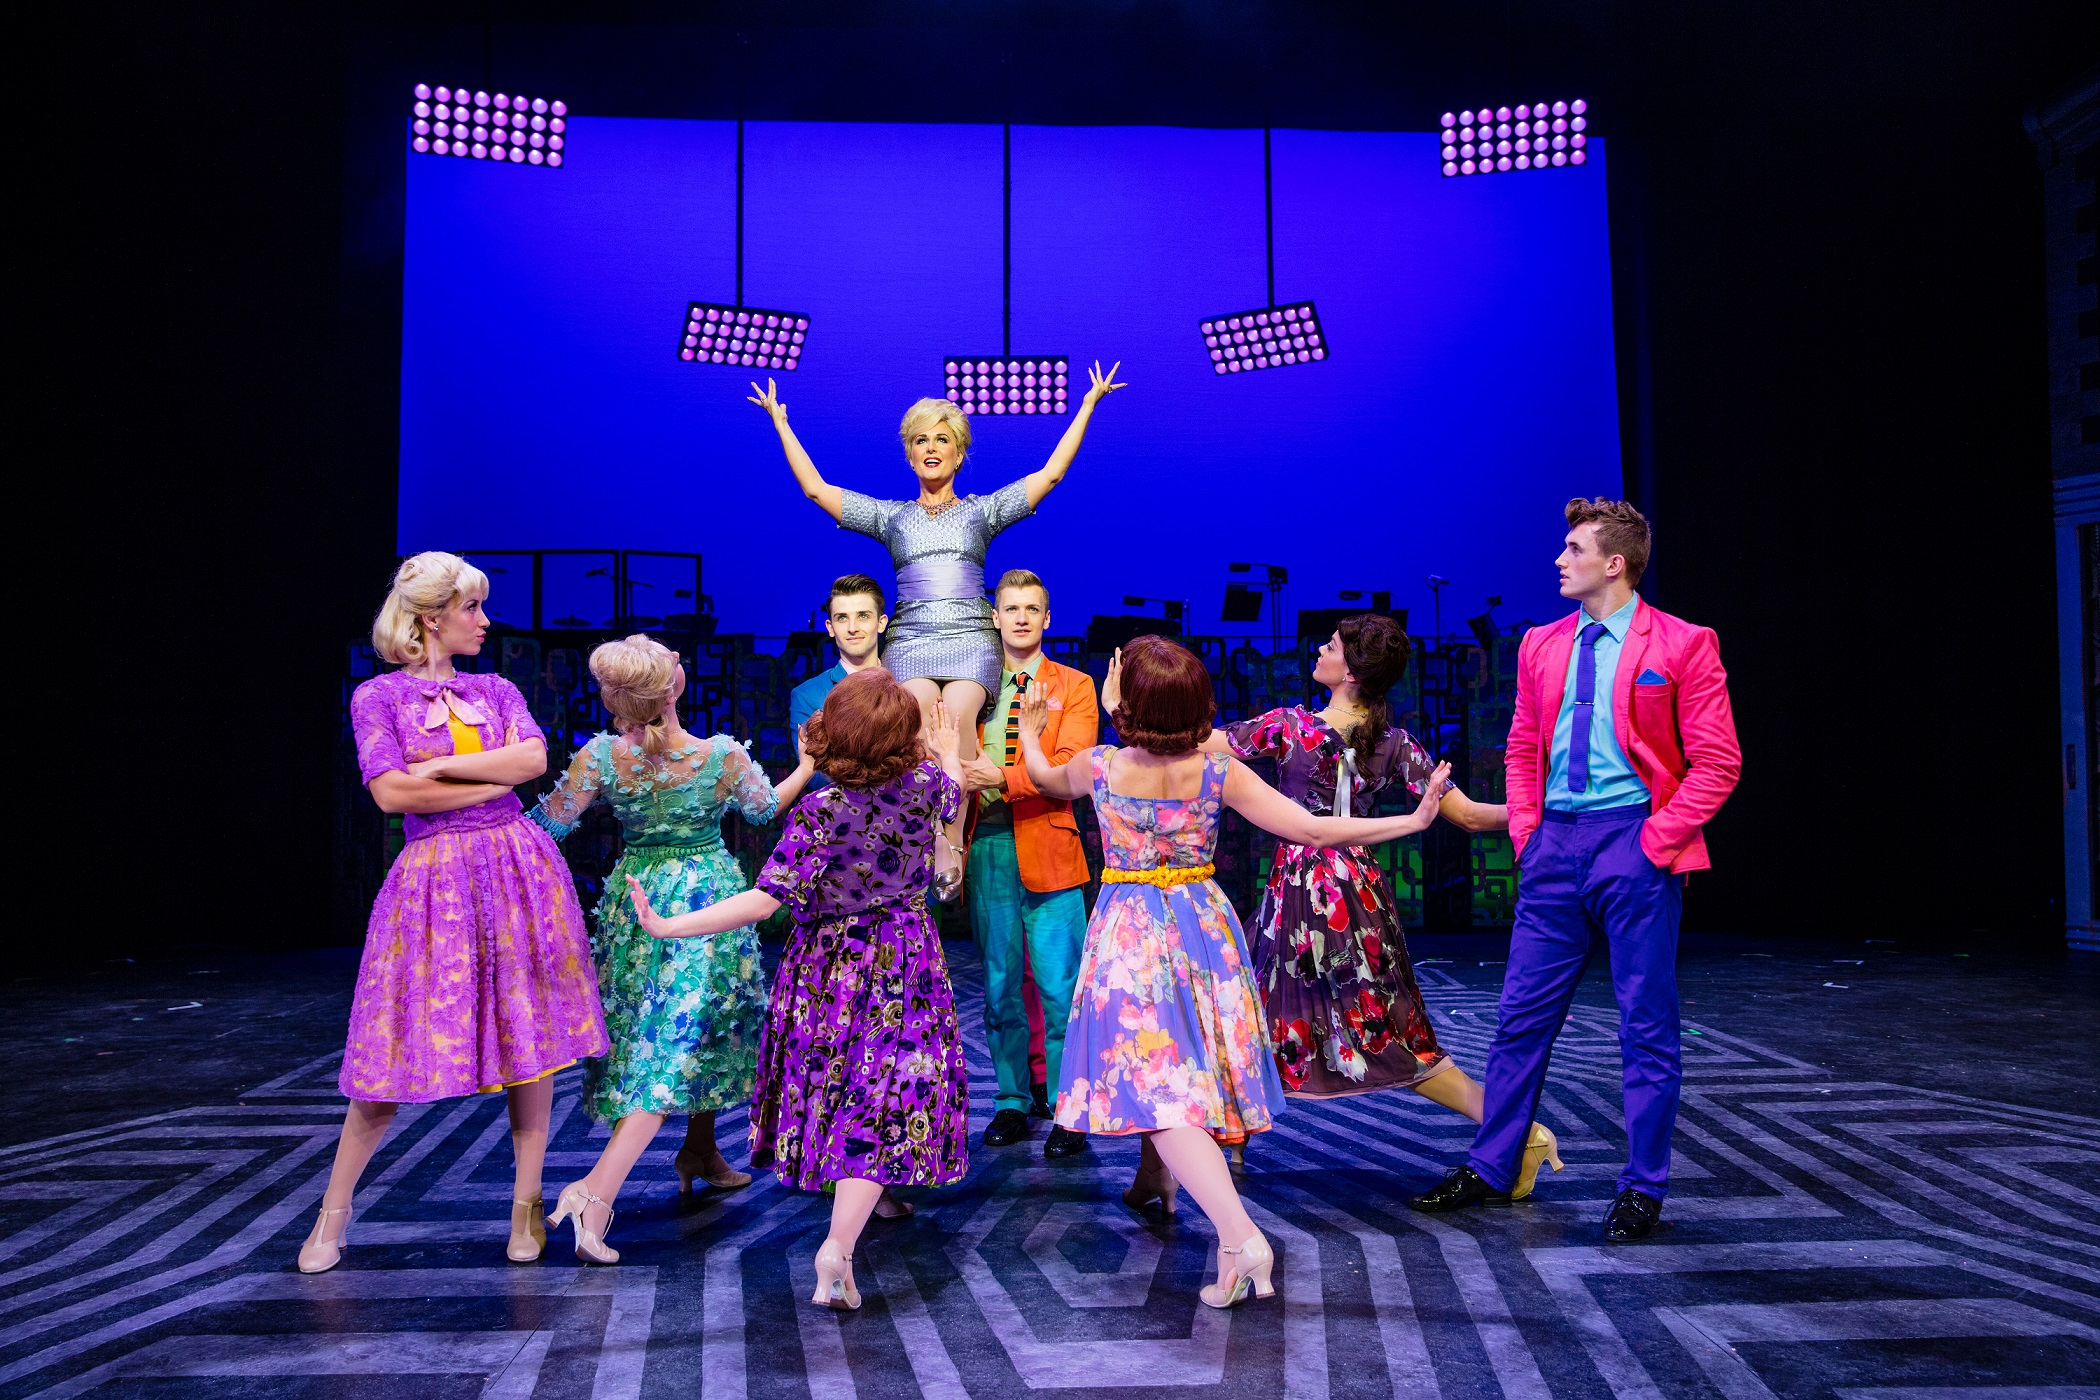 hairspray musical essays Ebscohost serves thousands of libraries with premium essays, articles and other content including hairspray (musical) get access to over 12 million other articles.